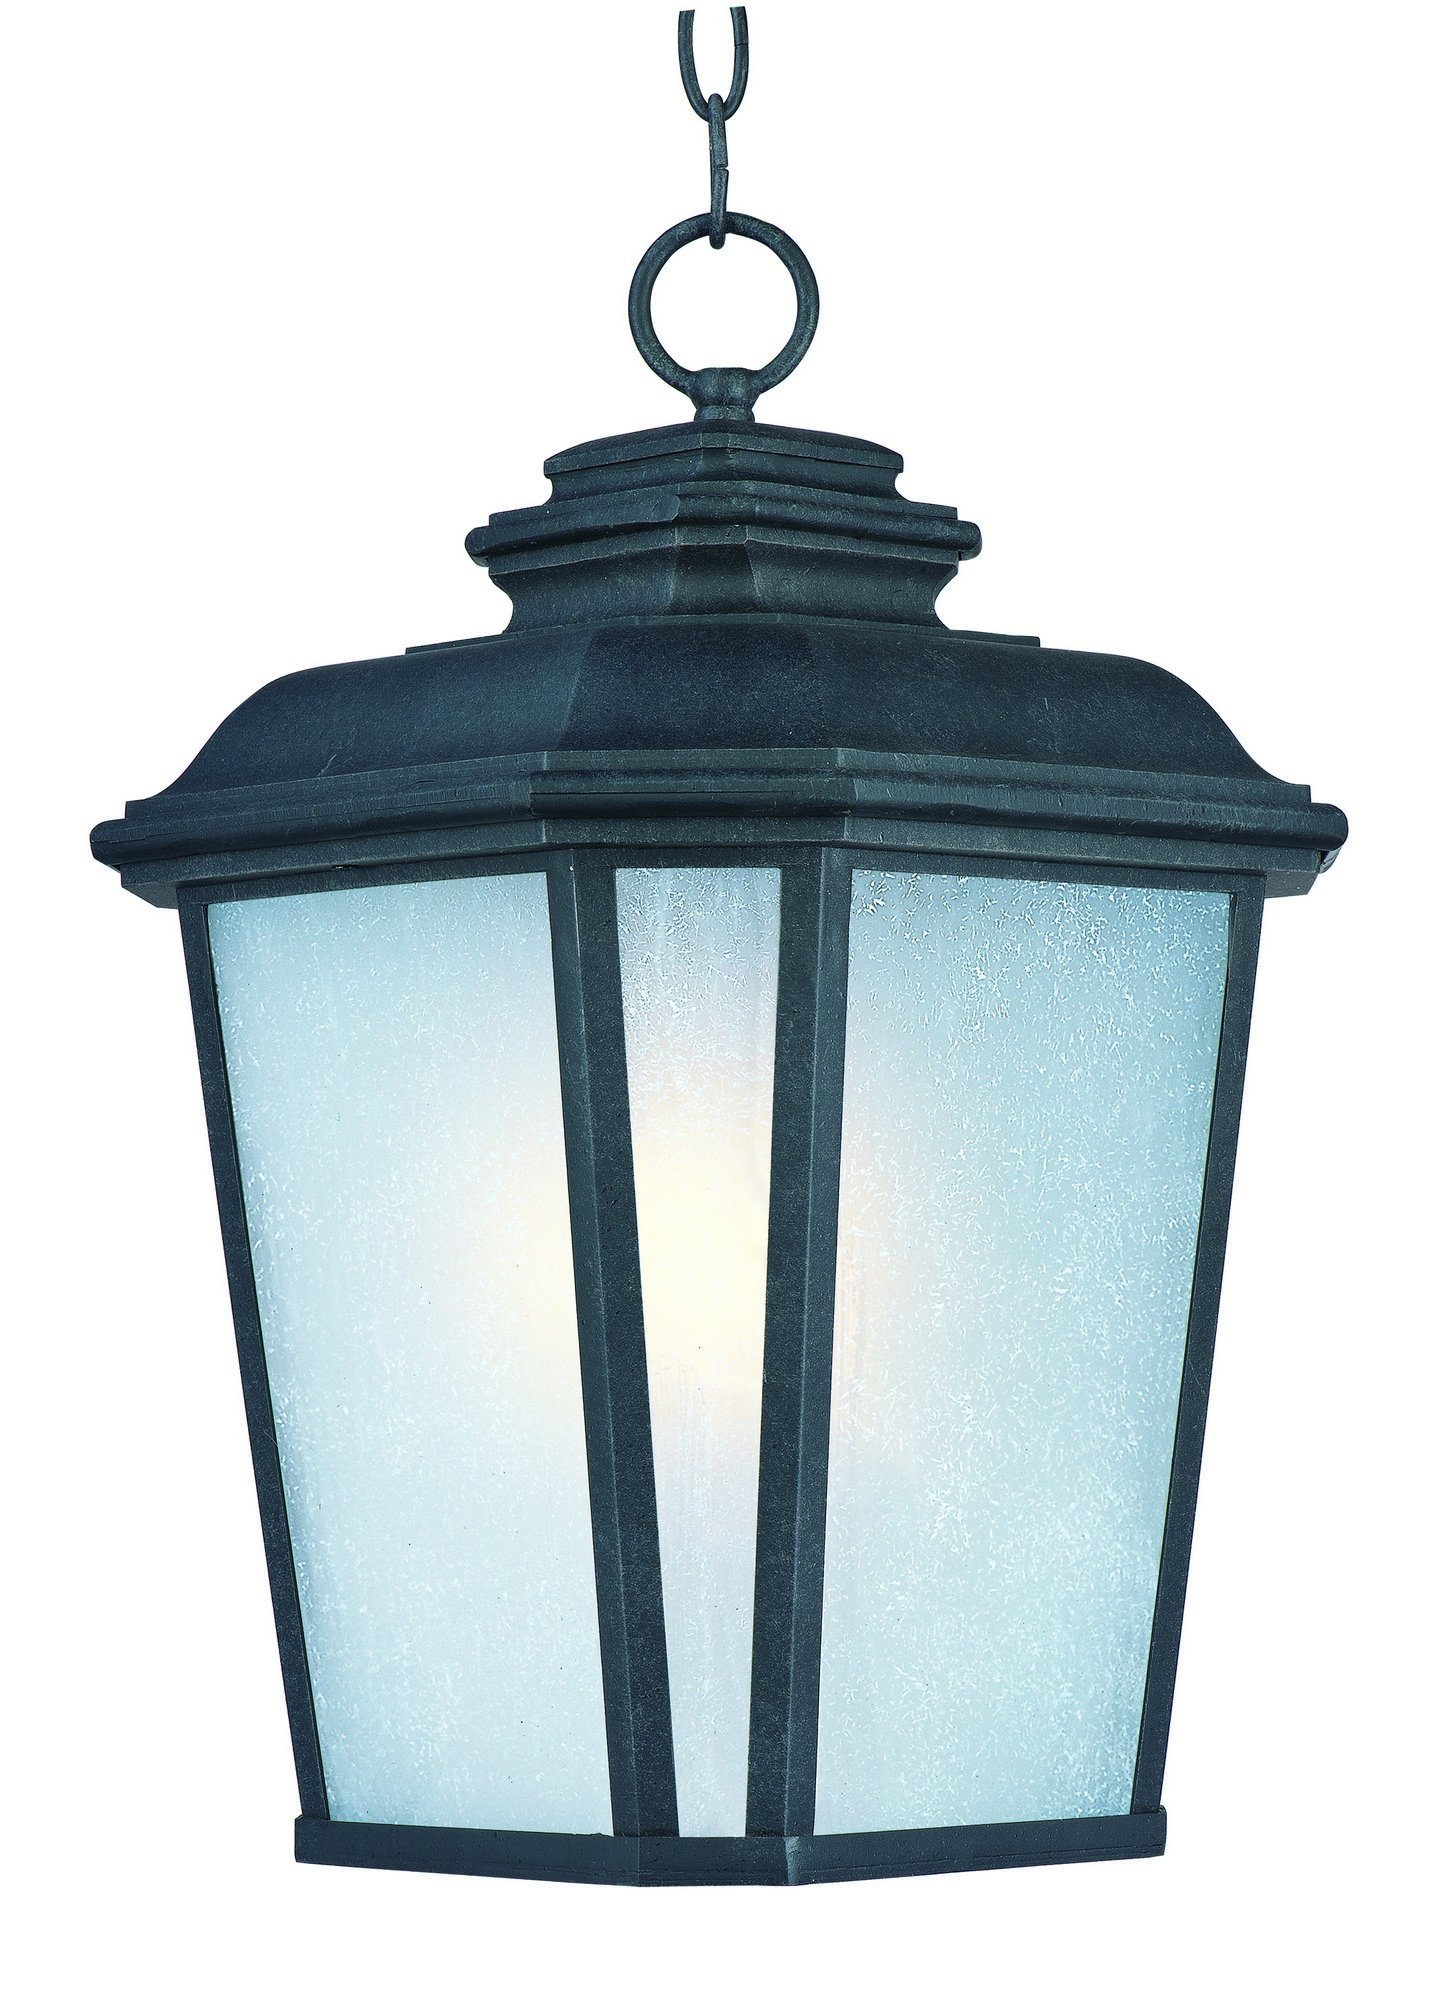 Maxim Lighting 3349 Radcliffe Outdoor Hanging Lantern, Black Oxide Finish, 11 by 16.5-Inch by Maxim Lighting